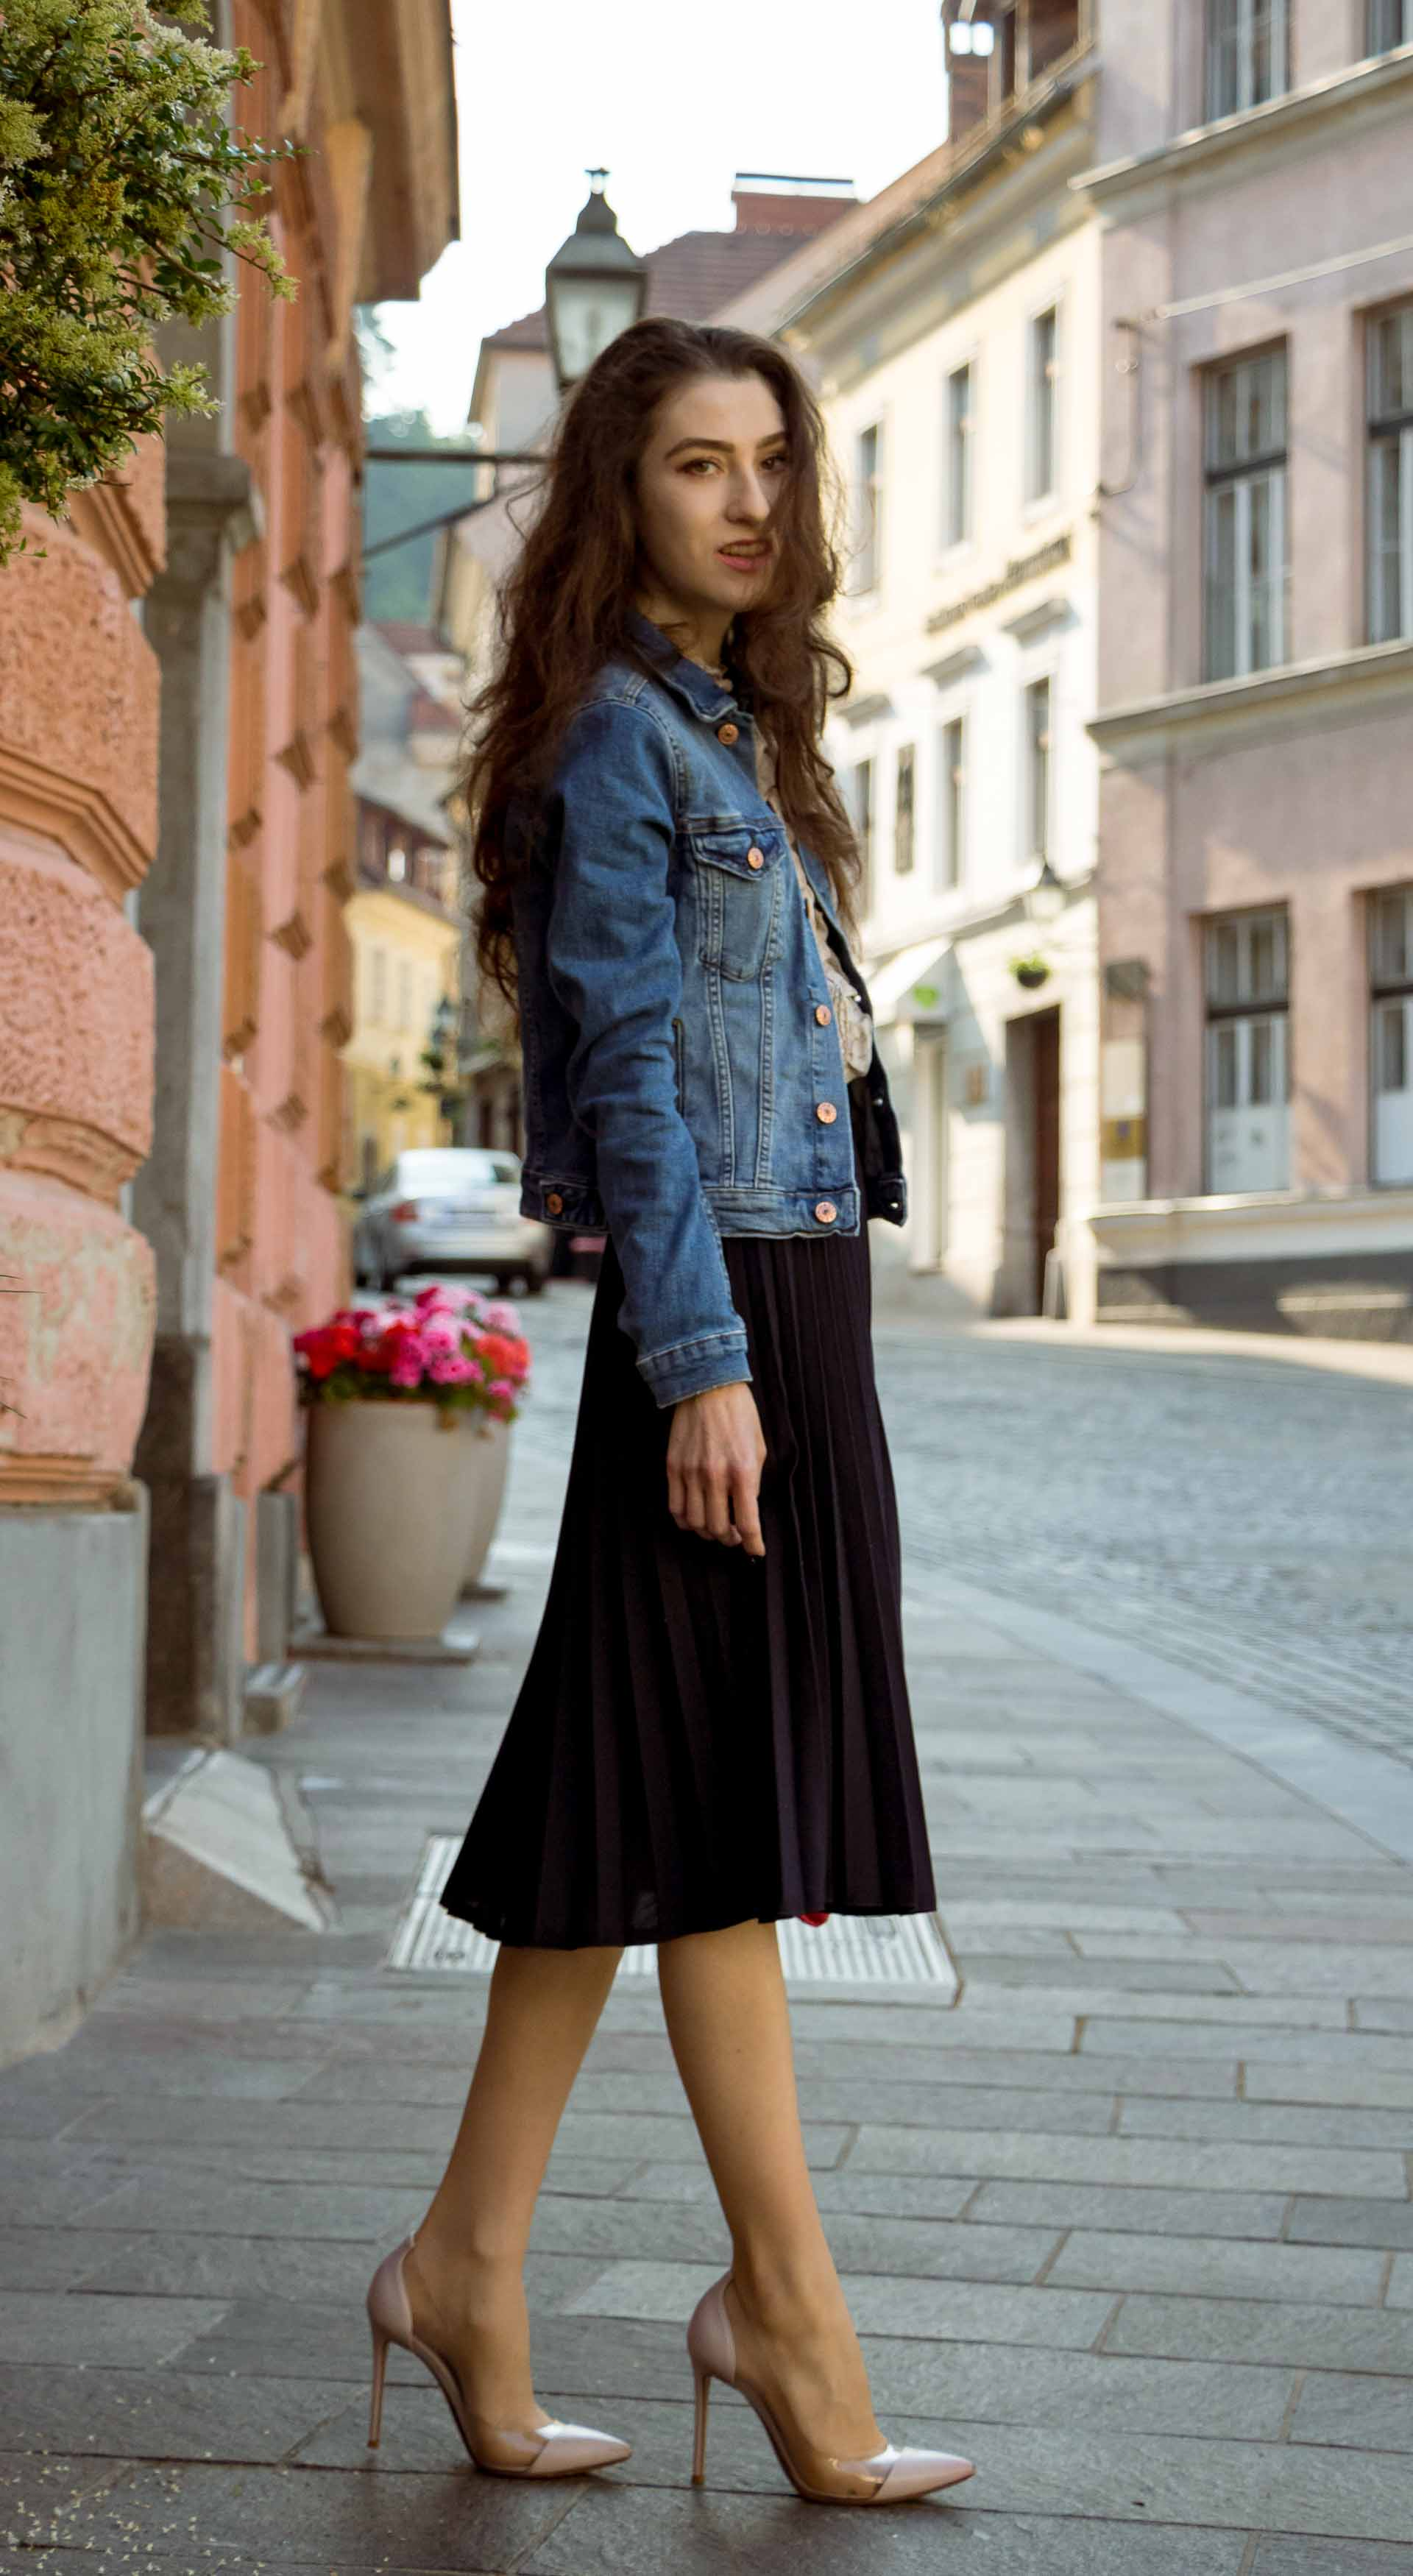 Veronika Lipar Fashion Blogger of Brunette from Wall Street wearing H&M denim jacket, floral blouse, midi pleated skirt, Gianvito Rossi plexi pumps, pink top handle bag while standing on the street in Ljubljana